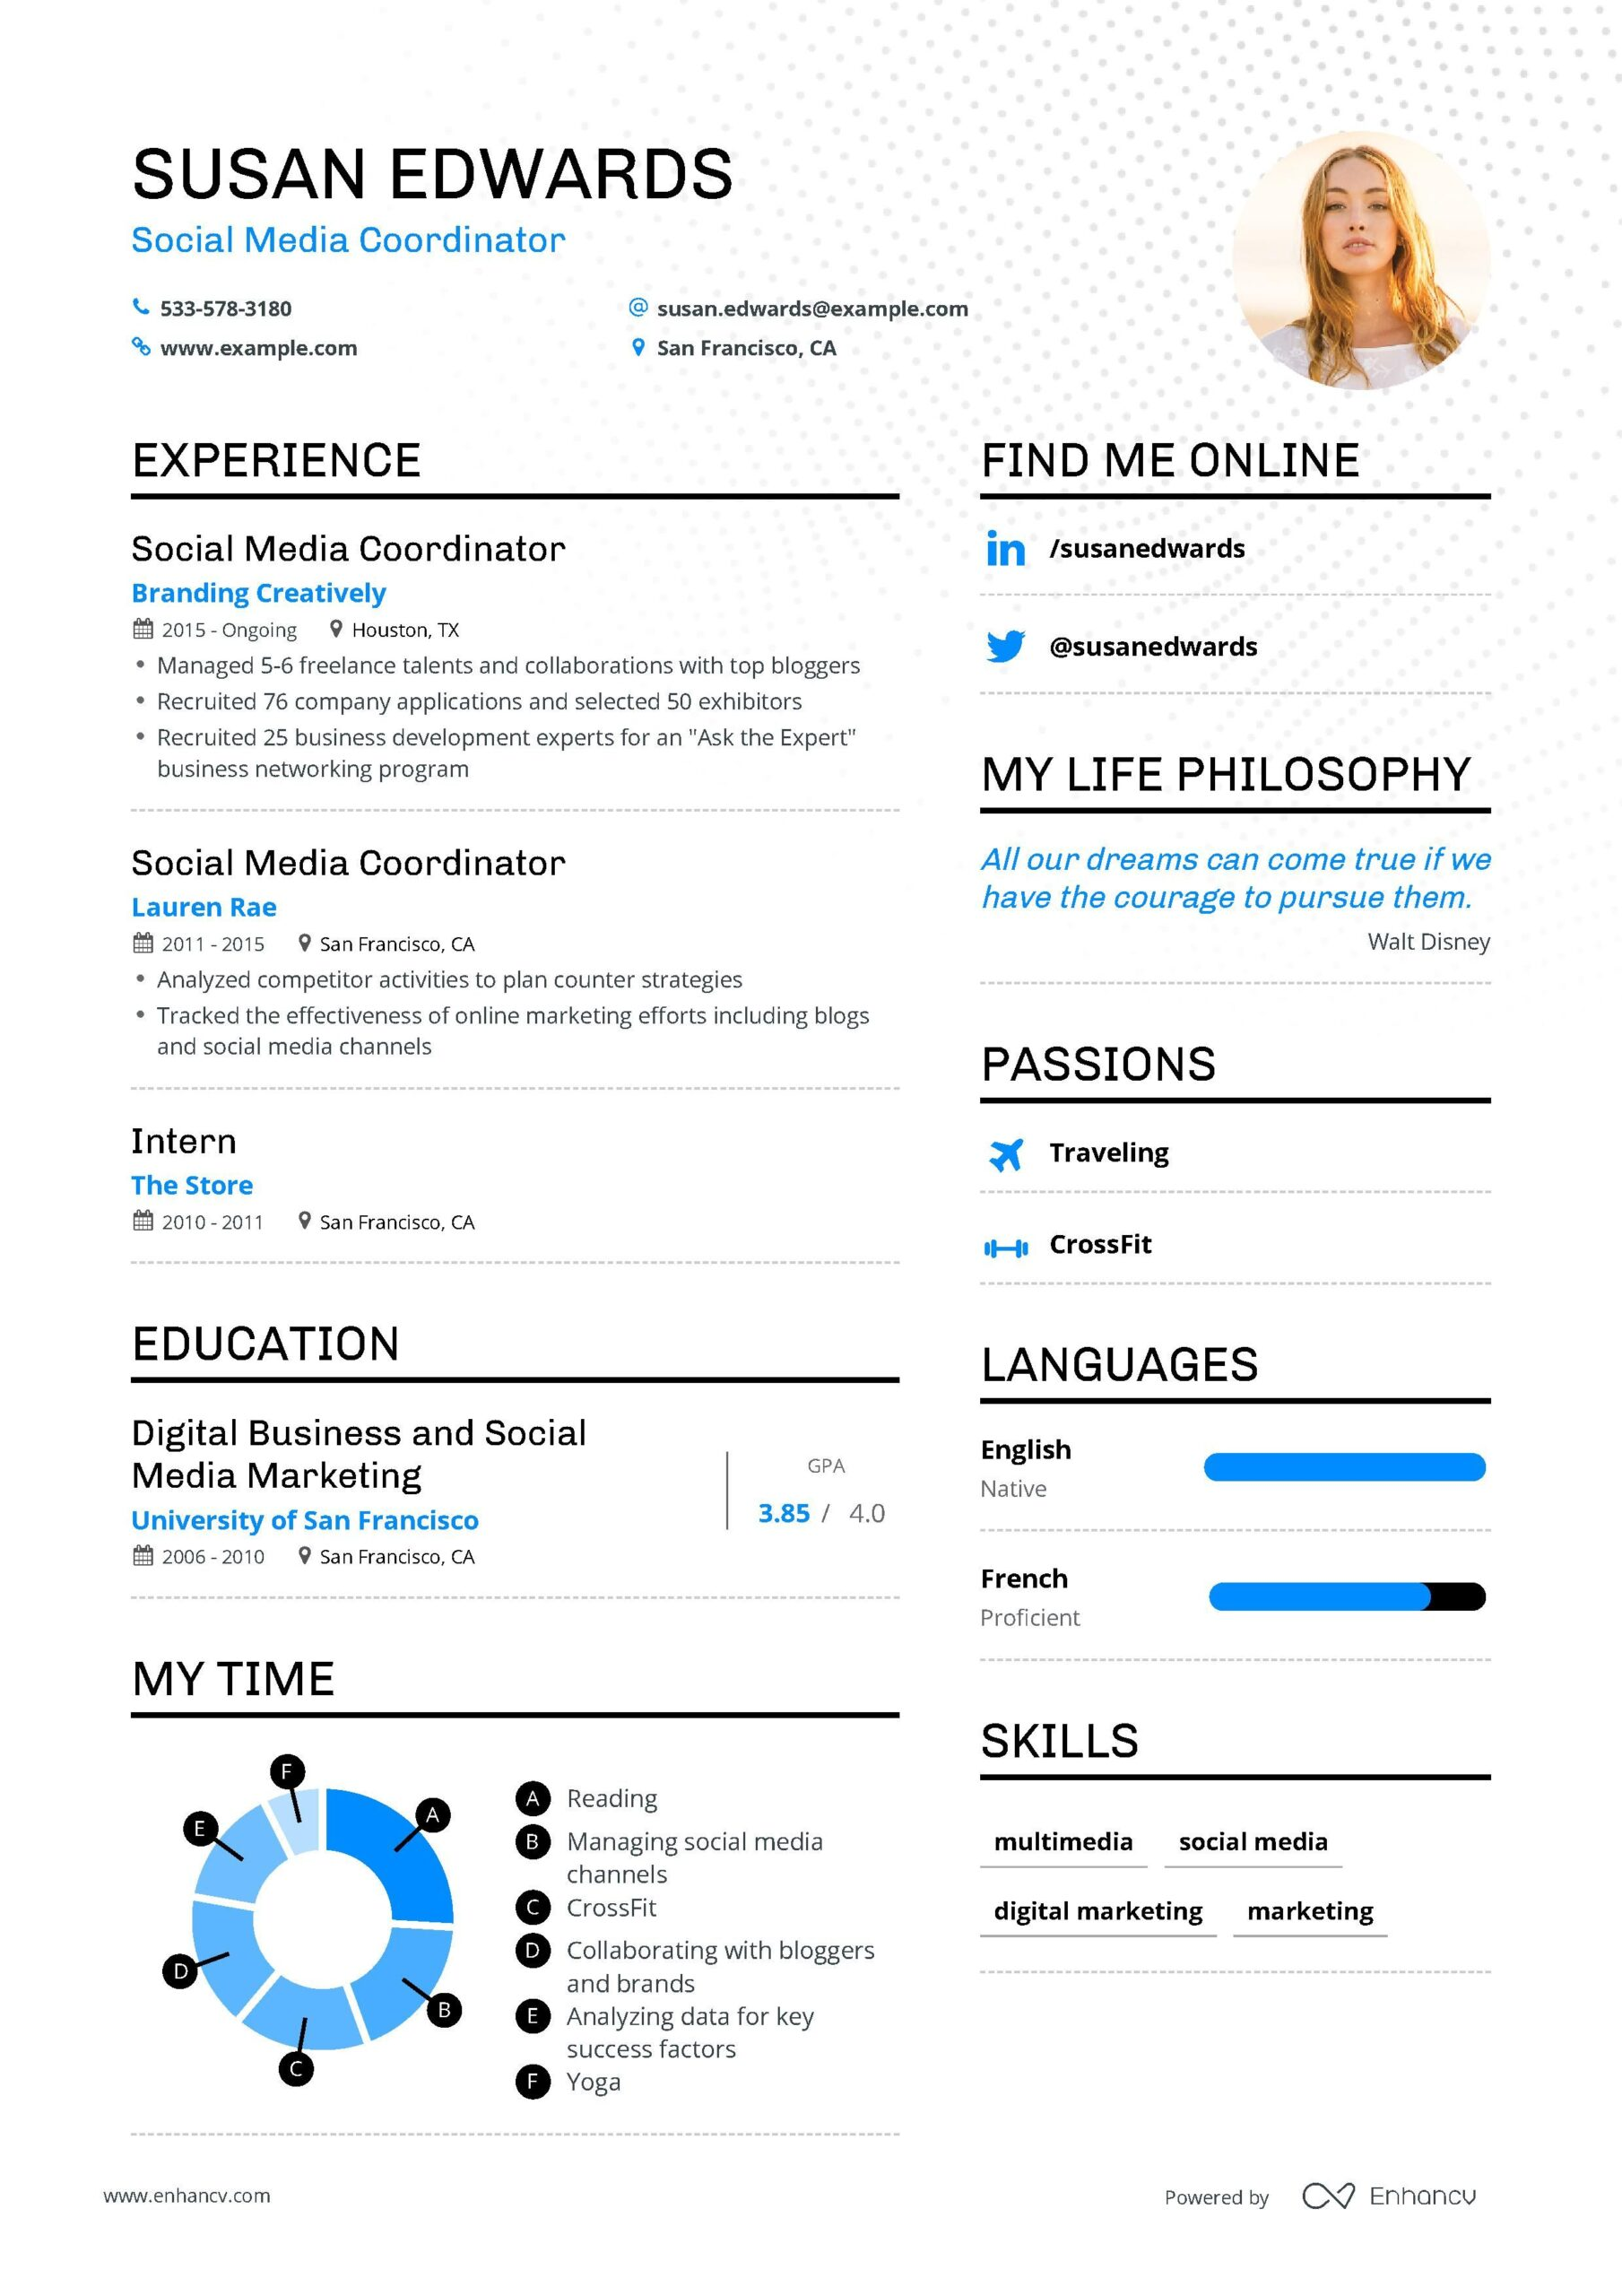 social media coordinator resume example and guide for examples studies worksheets make Resume Social Media Coordinator Resume